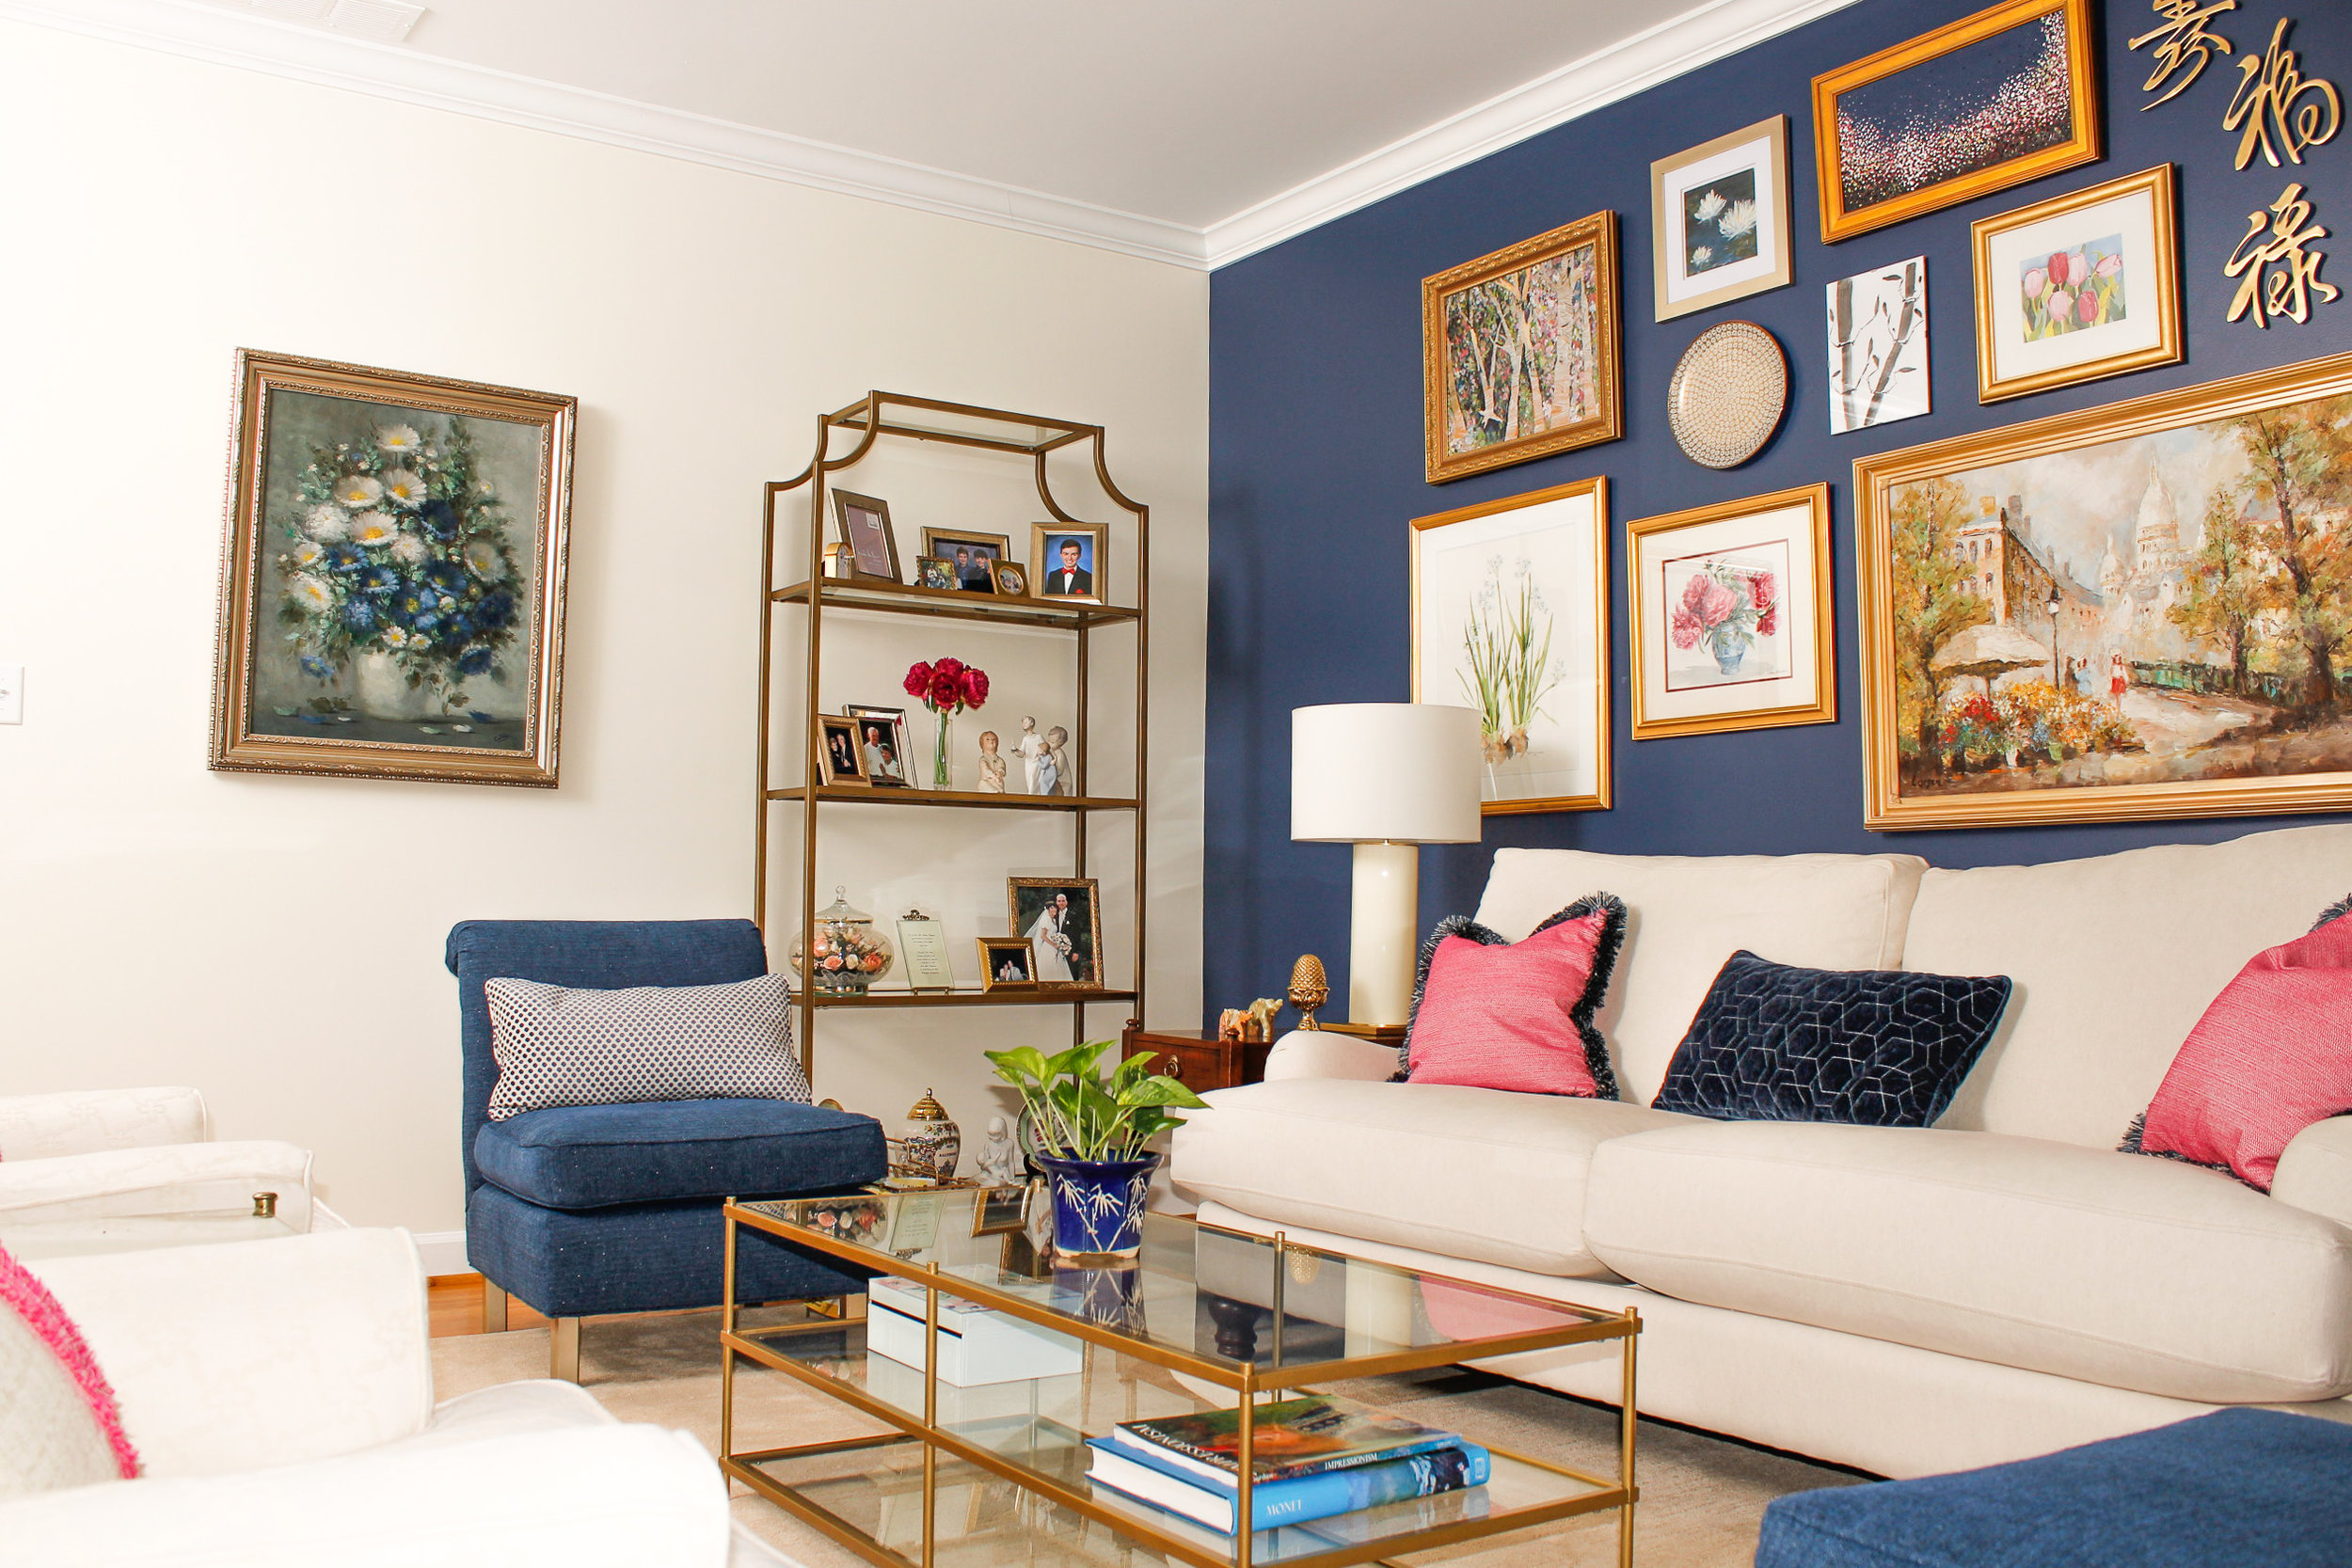 Family photos are displayed on the gold etagere.